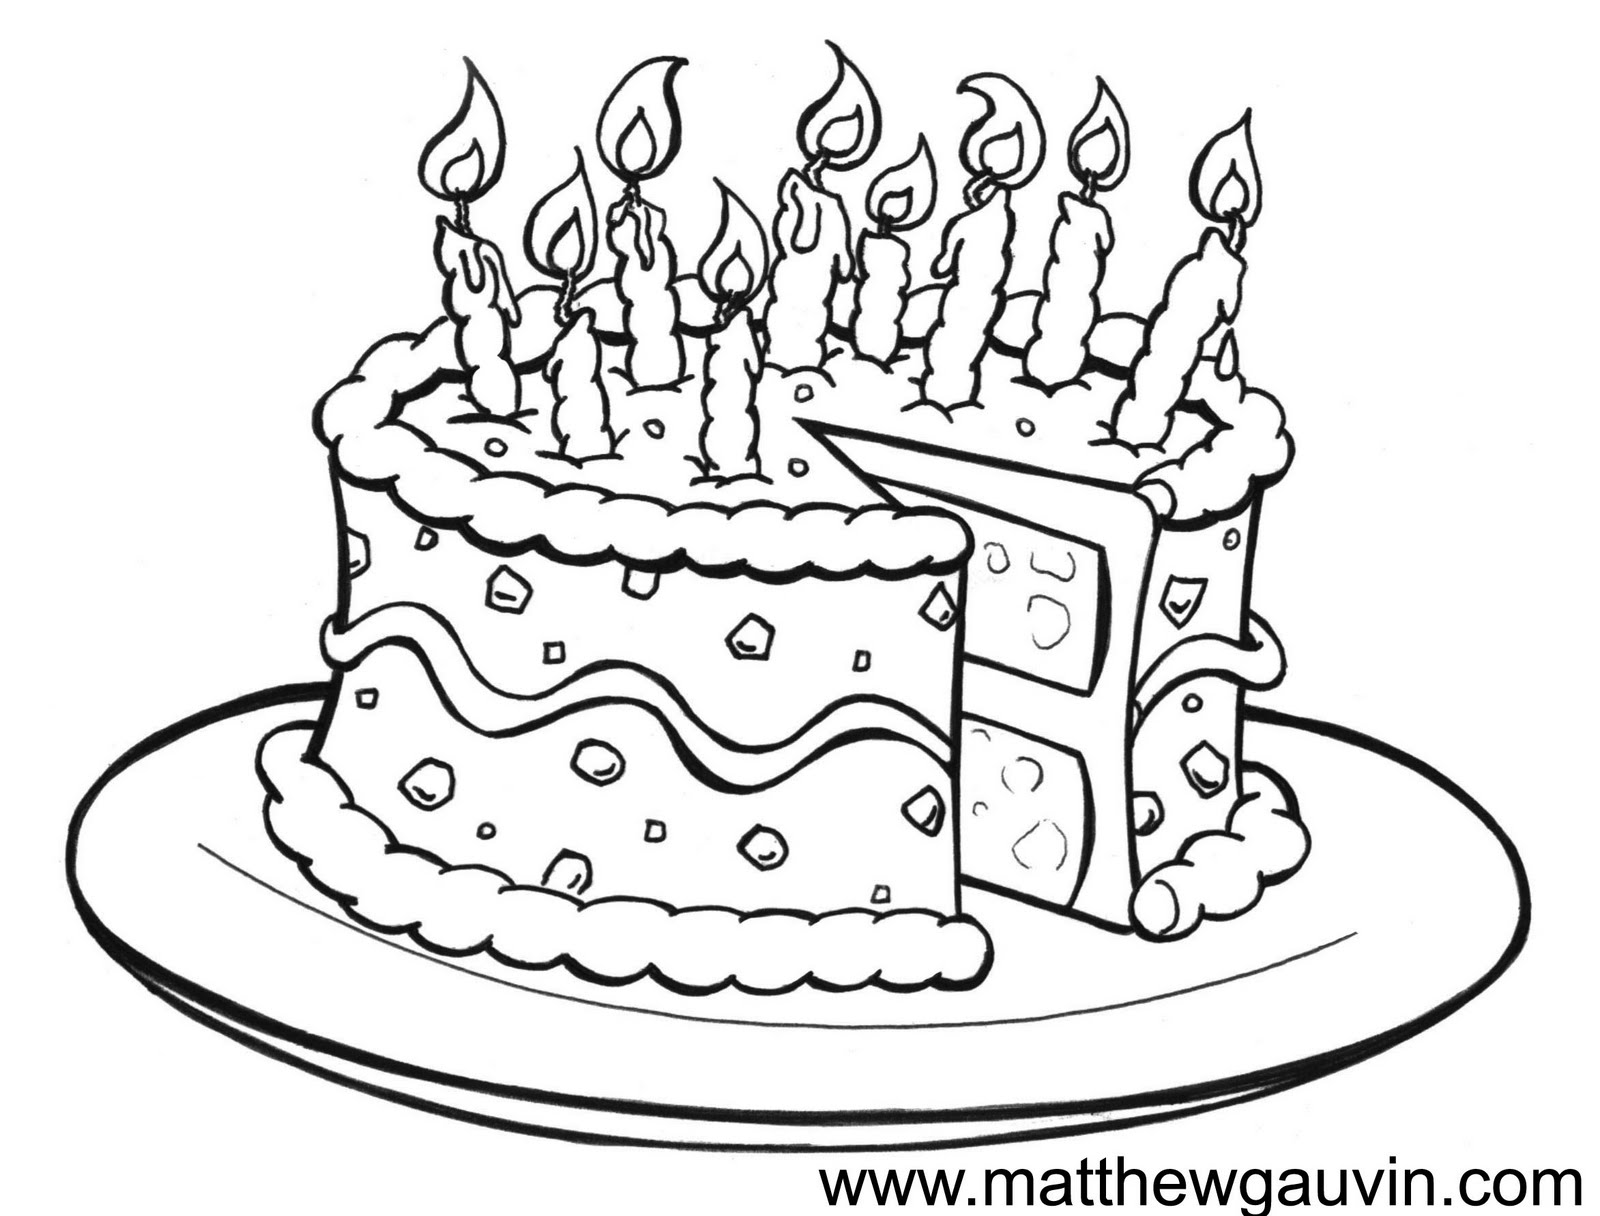 how to draw a birthday cake how to draw a cake step by step tutorial cake drawing cake draw how to birthday a